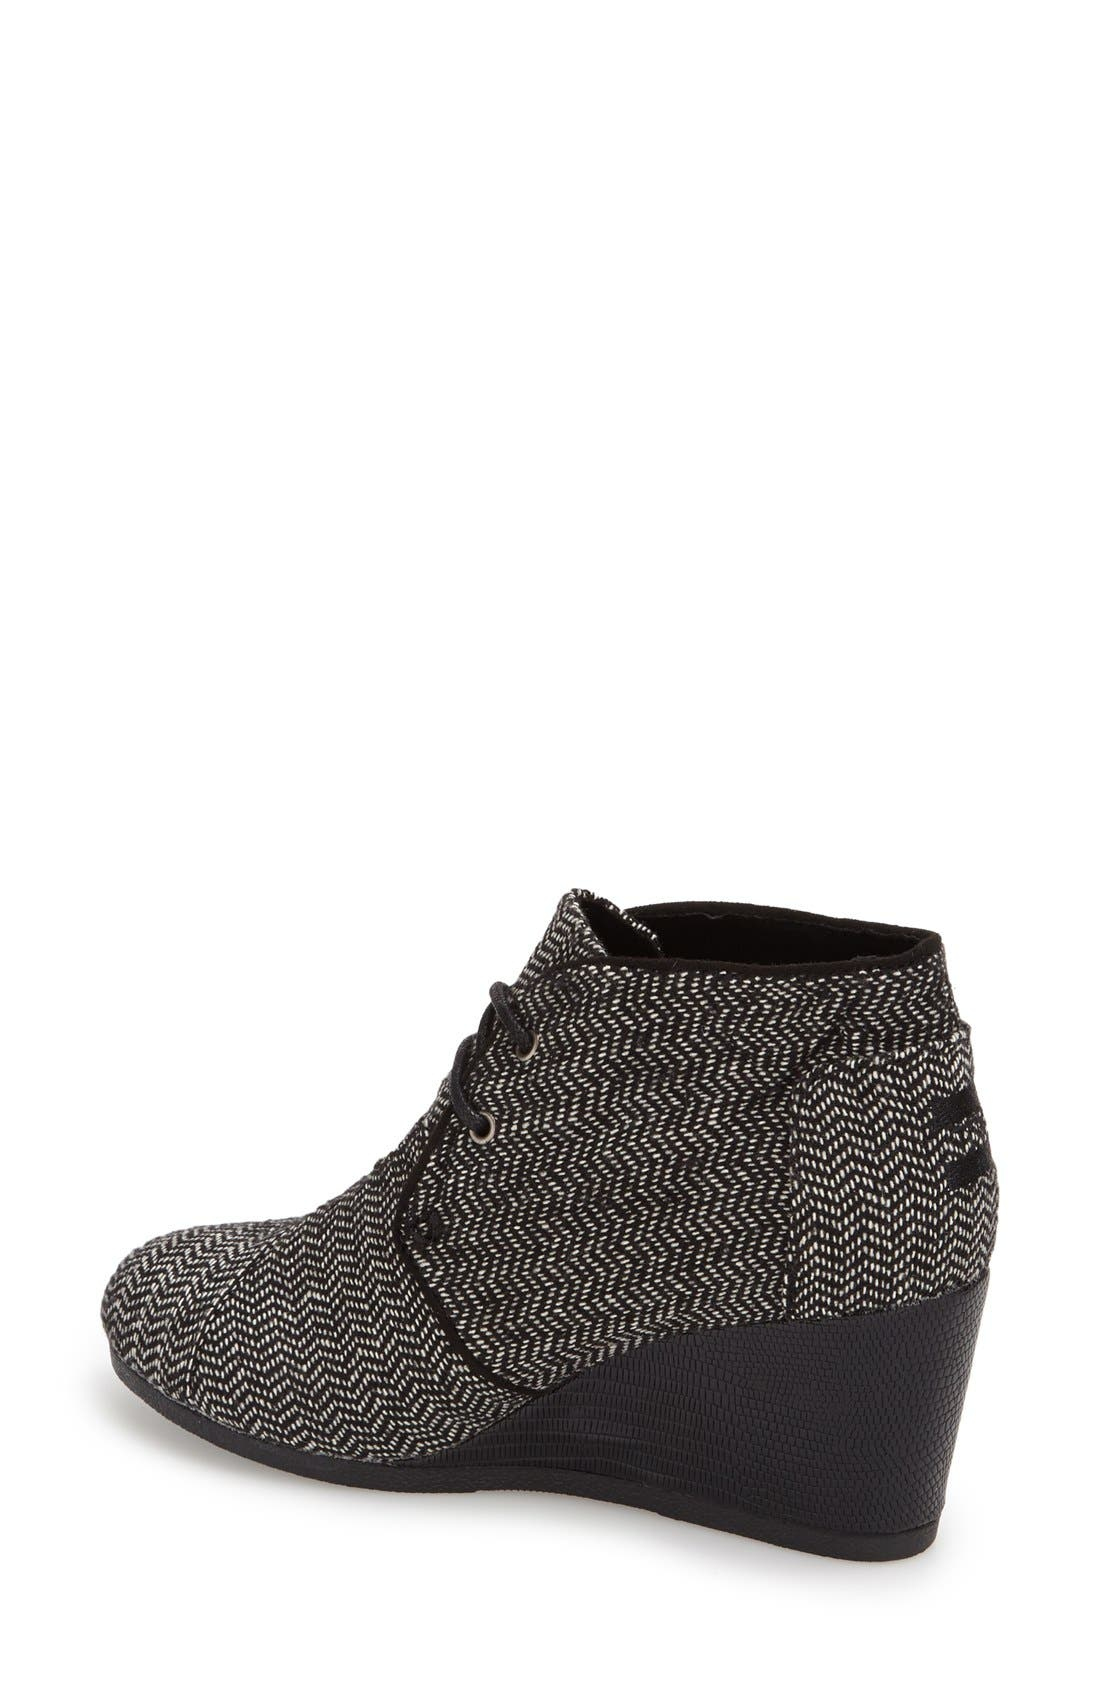 Alternate Image 2  - TOMS 'Desert' Wedge Bootie (Women)